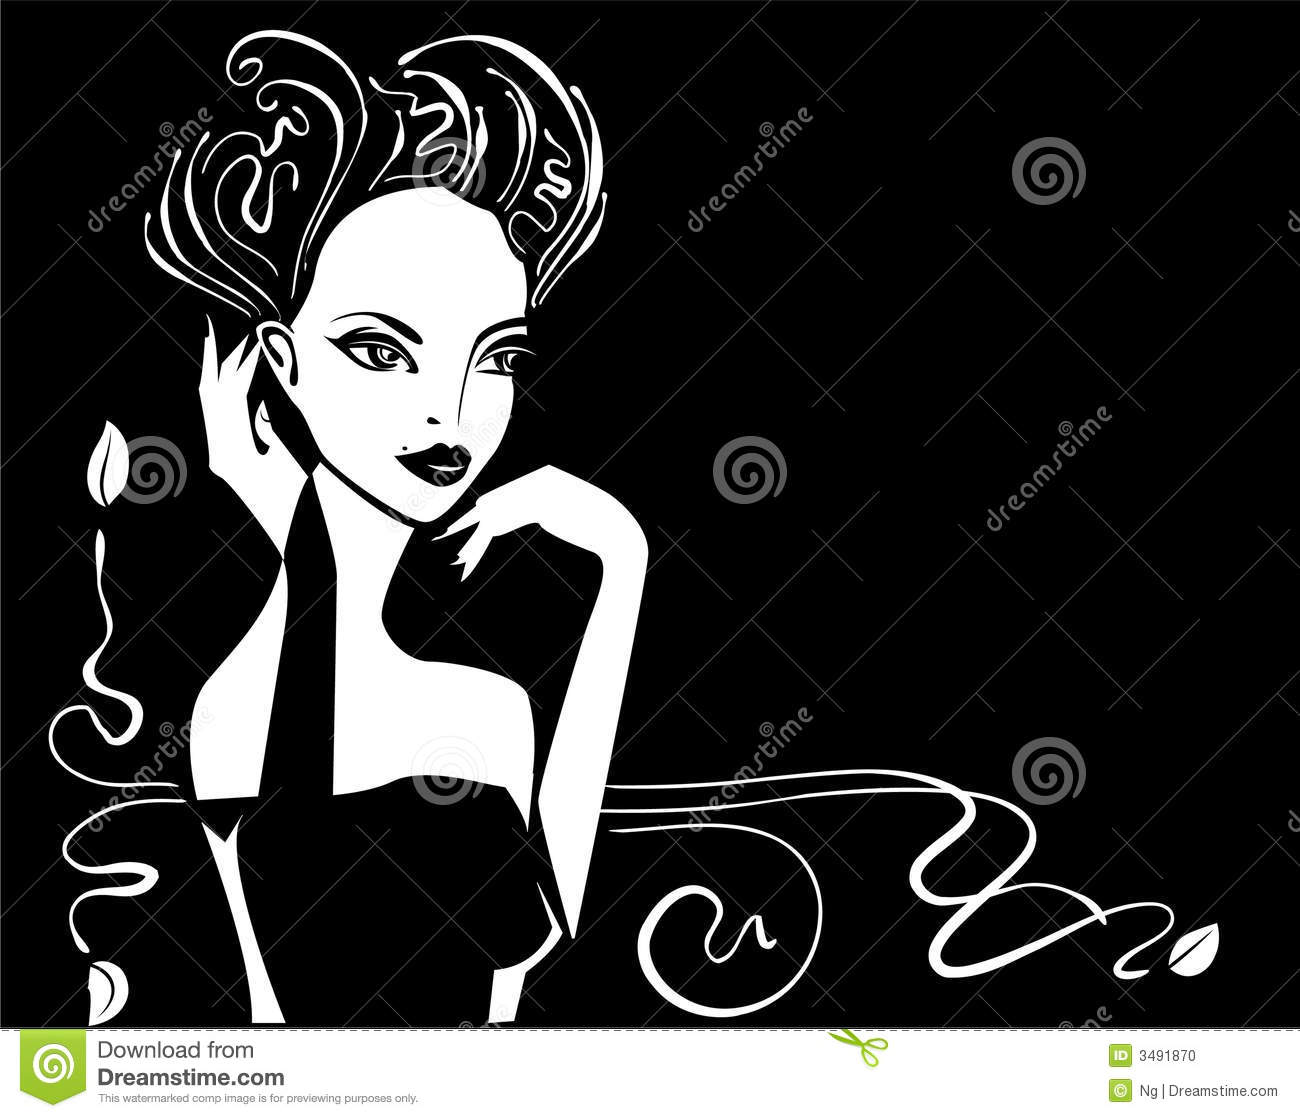 Graphic illustration of a retro glamour woman